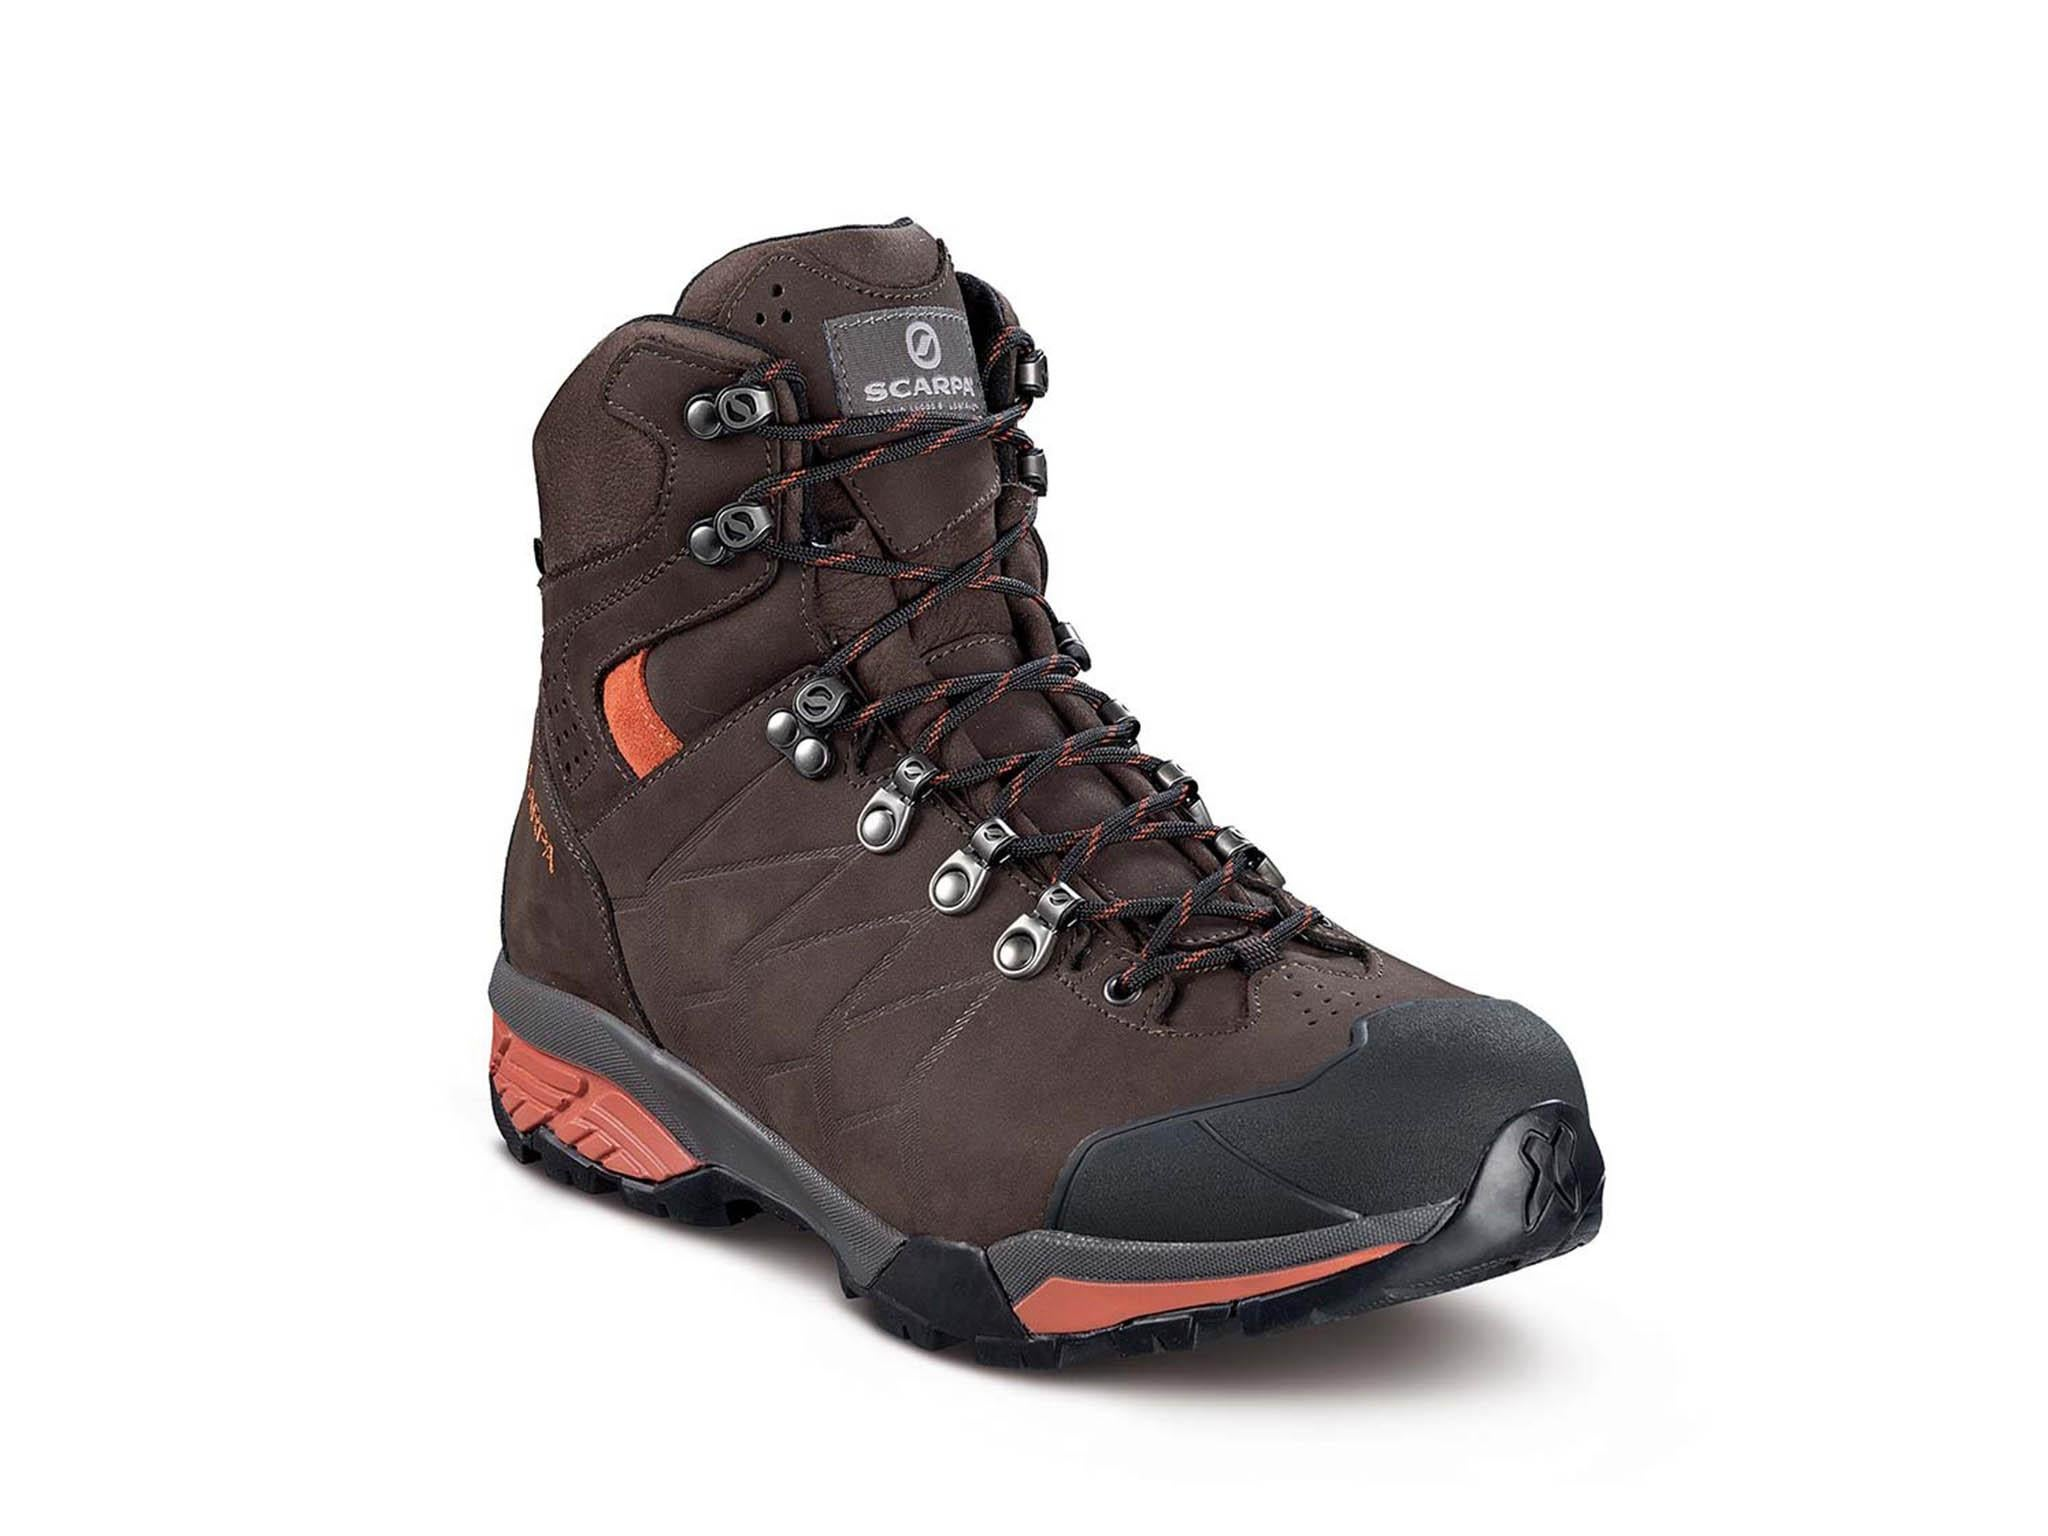 4aaa9d3acc8 Best men's hiking boots and shoes